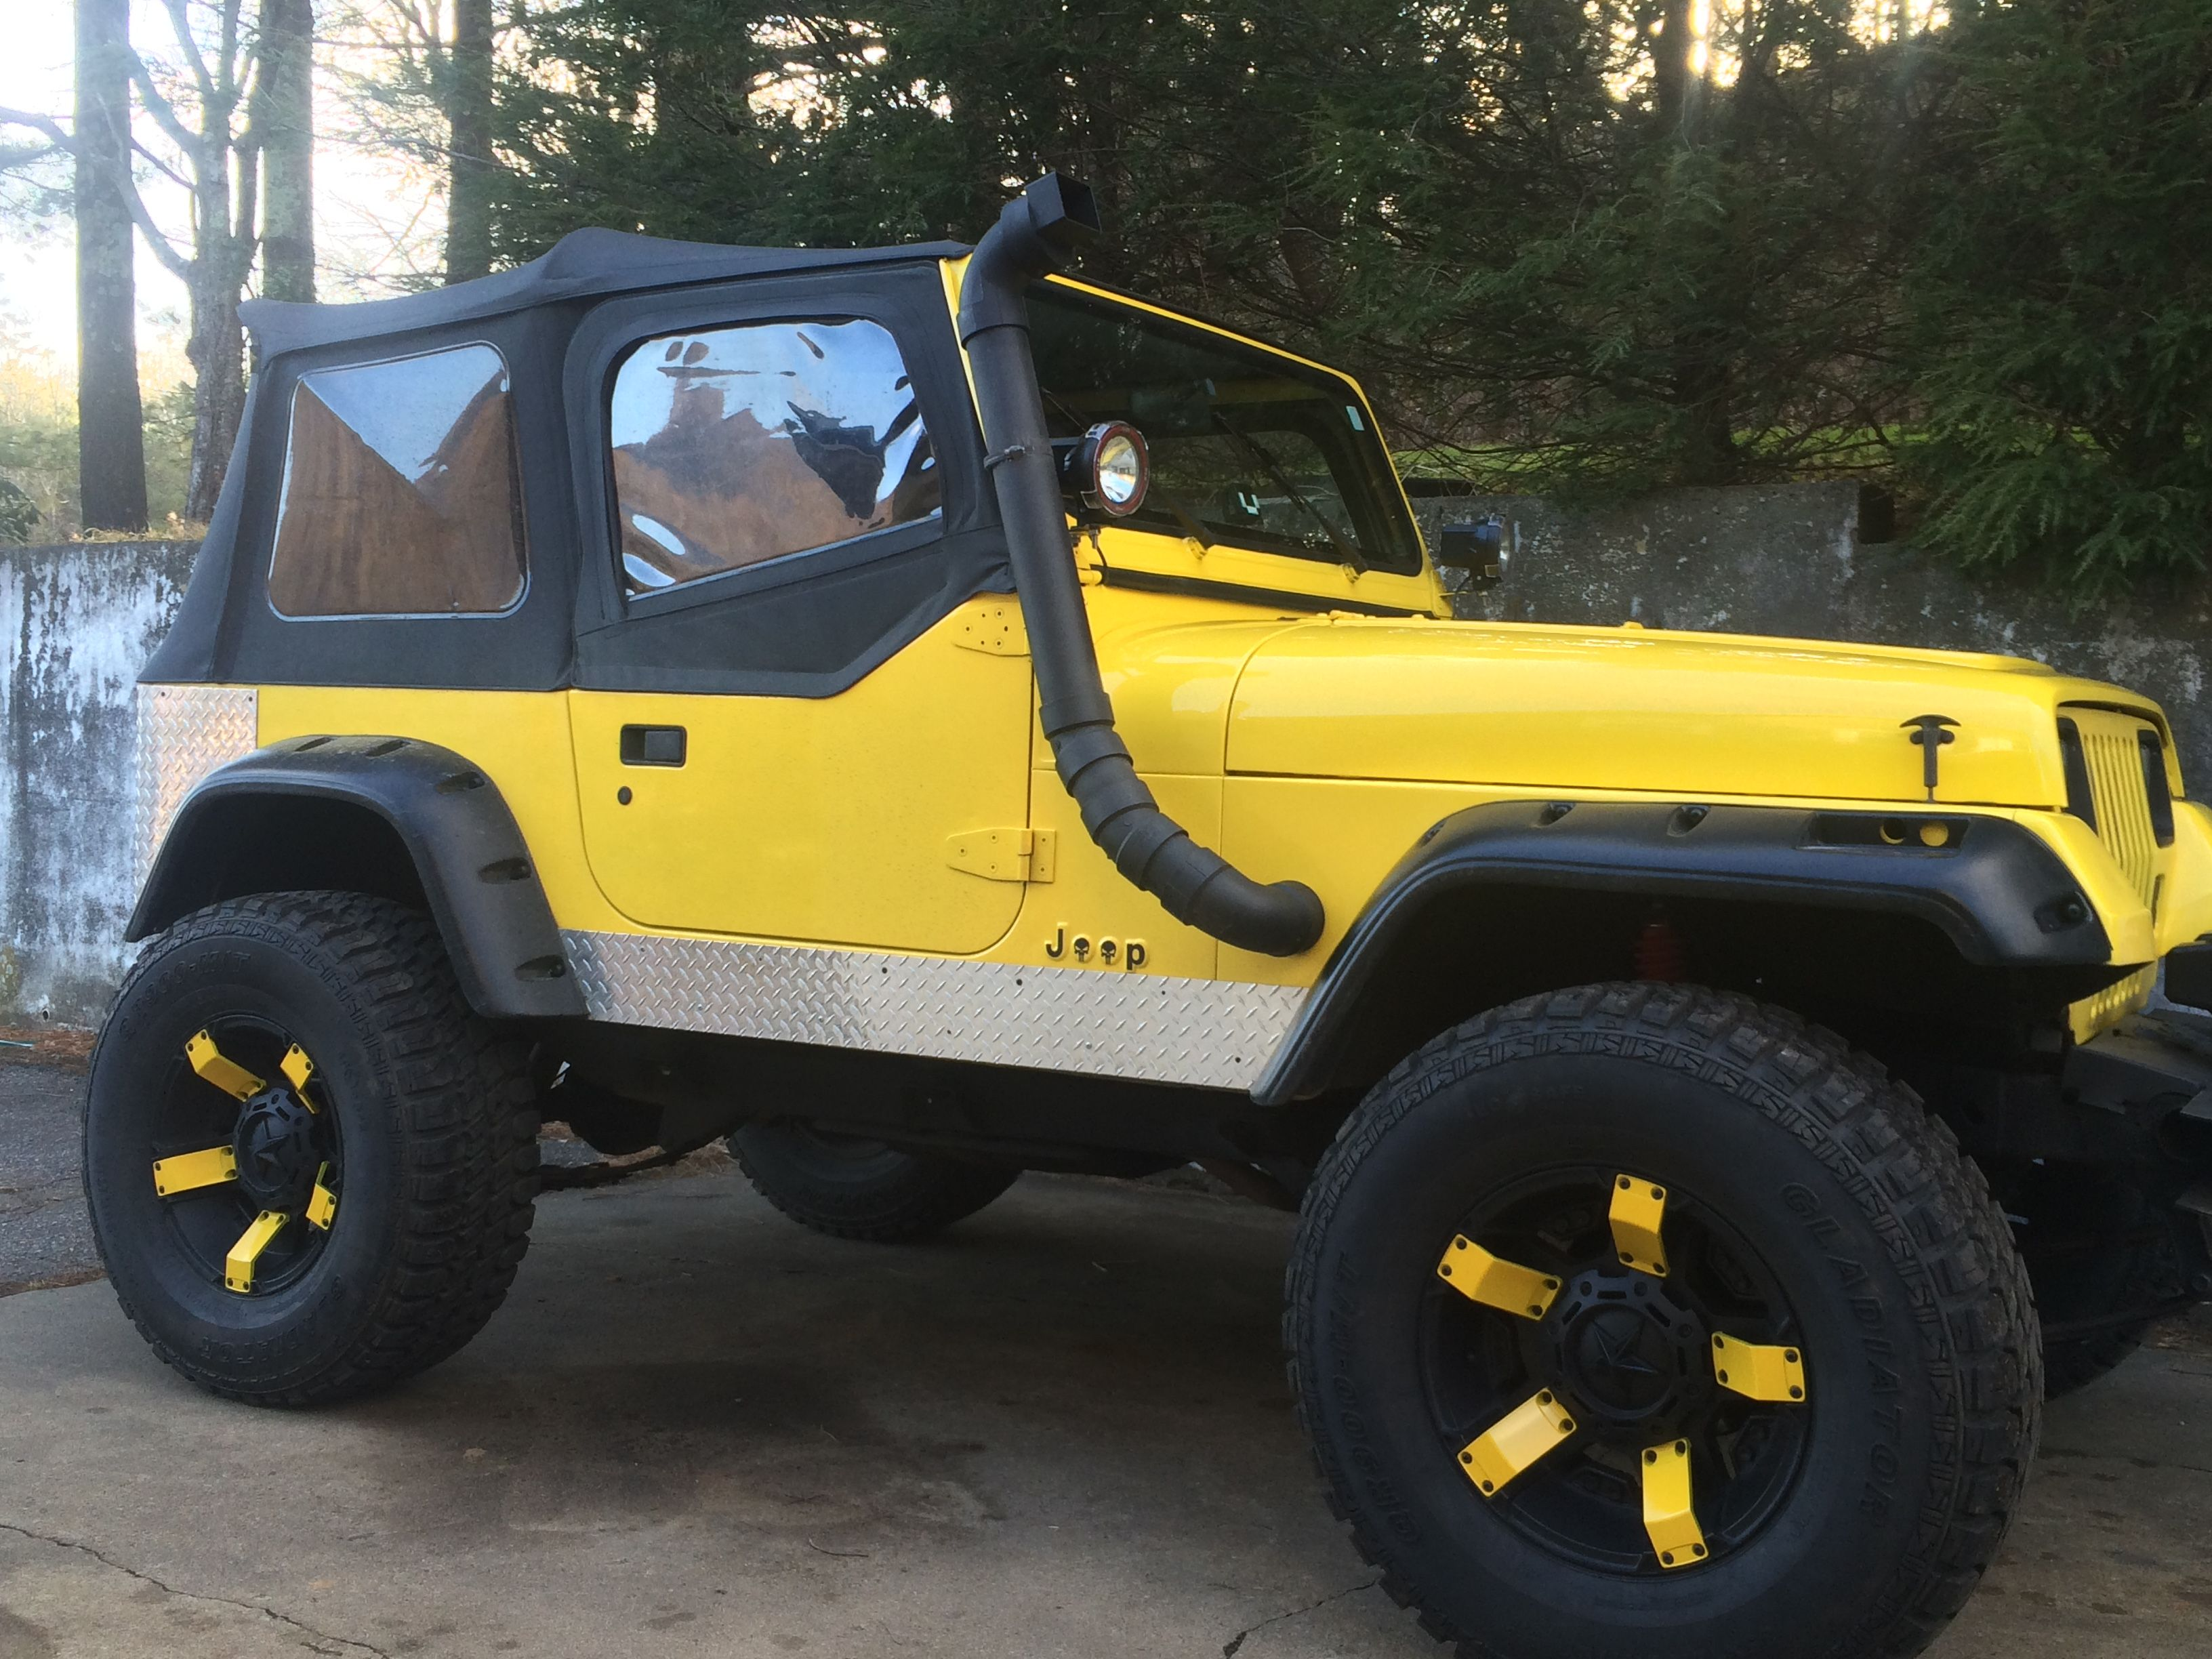 My 1990 Yj Jeep Wrangler Still Own This On 17 Inch Rockstar2 Wheels On 35s Jeep Yj Yellow Jeep Jeep Wrangler